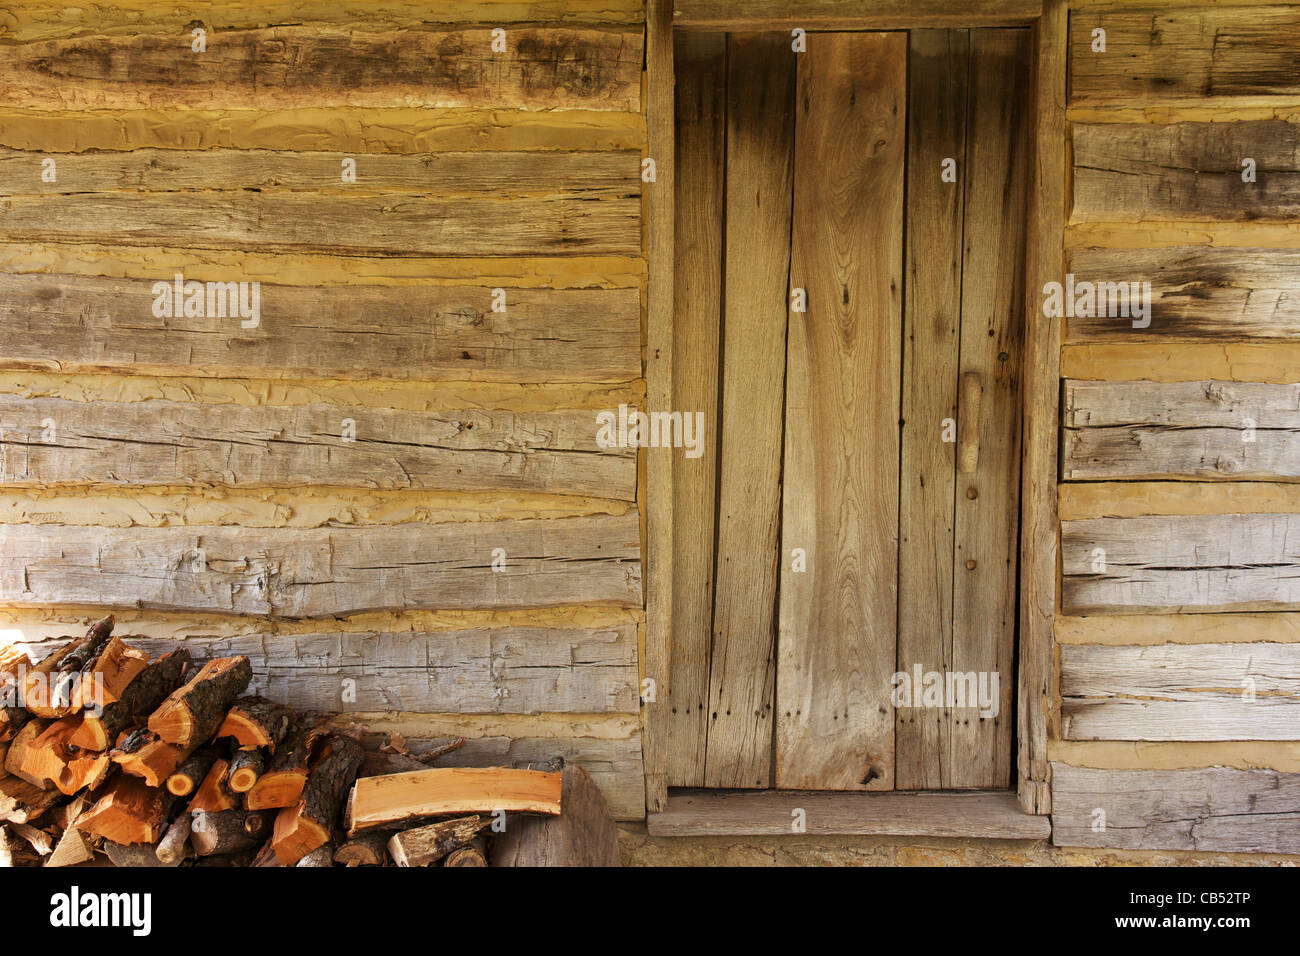 Pioneer Cabin Door And Stacked Firewood. Lincolnu0027s New Salem State Historic  Site, Illinois.